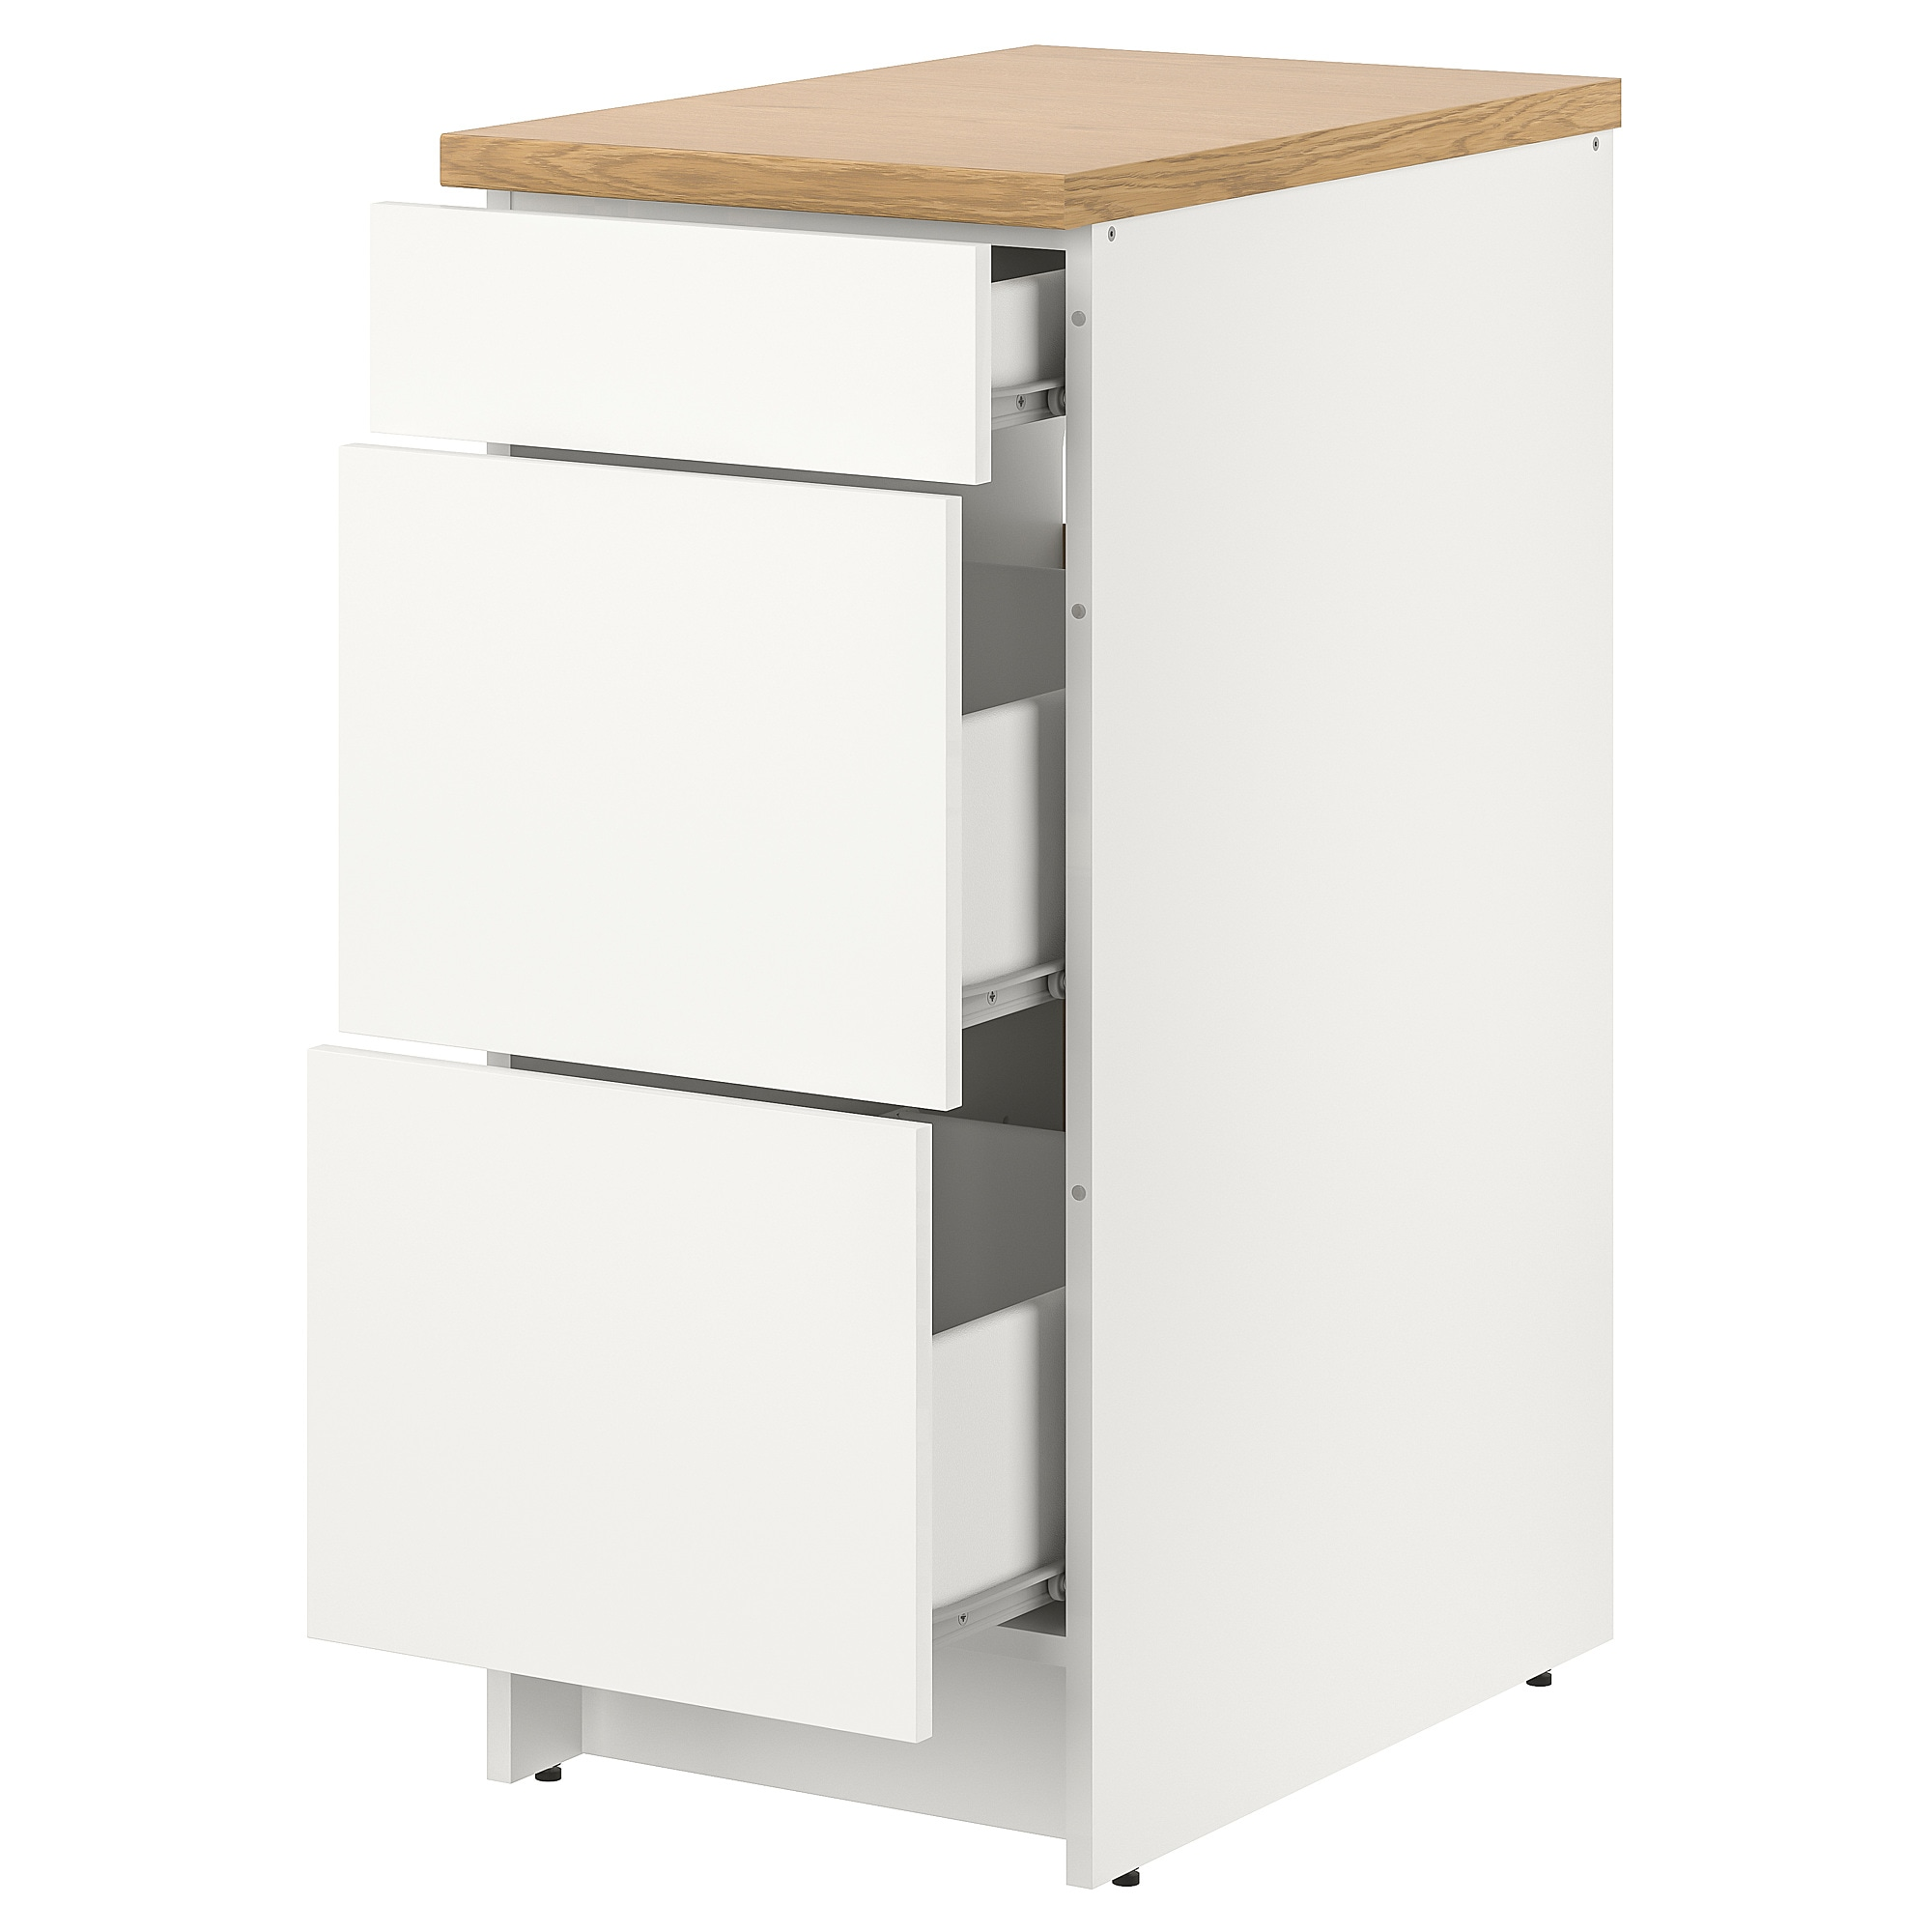 Merveilleux KNOXHULT Base Cabinet With Drawers   IKEA